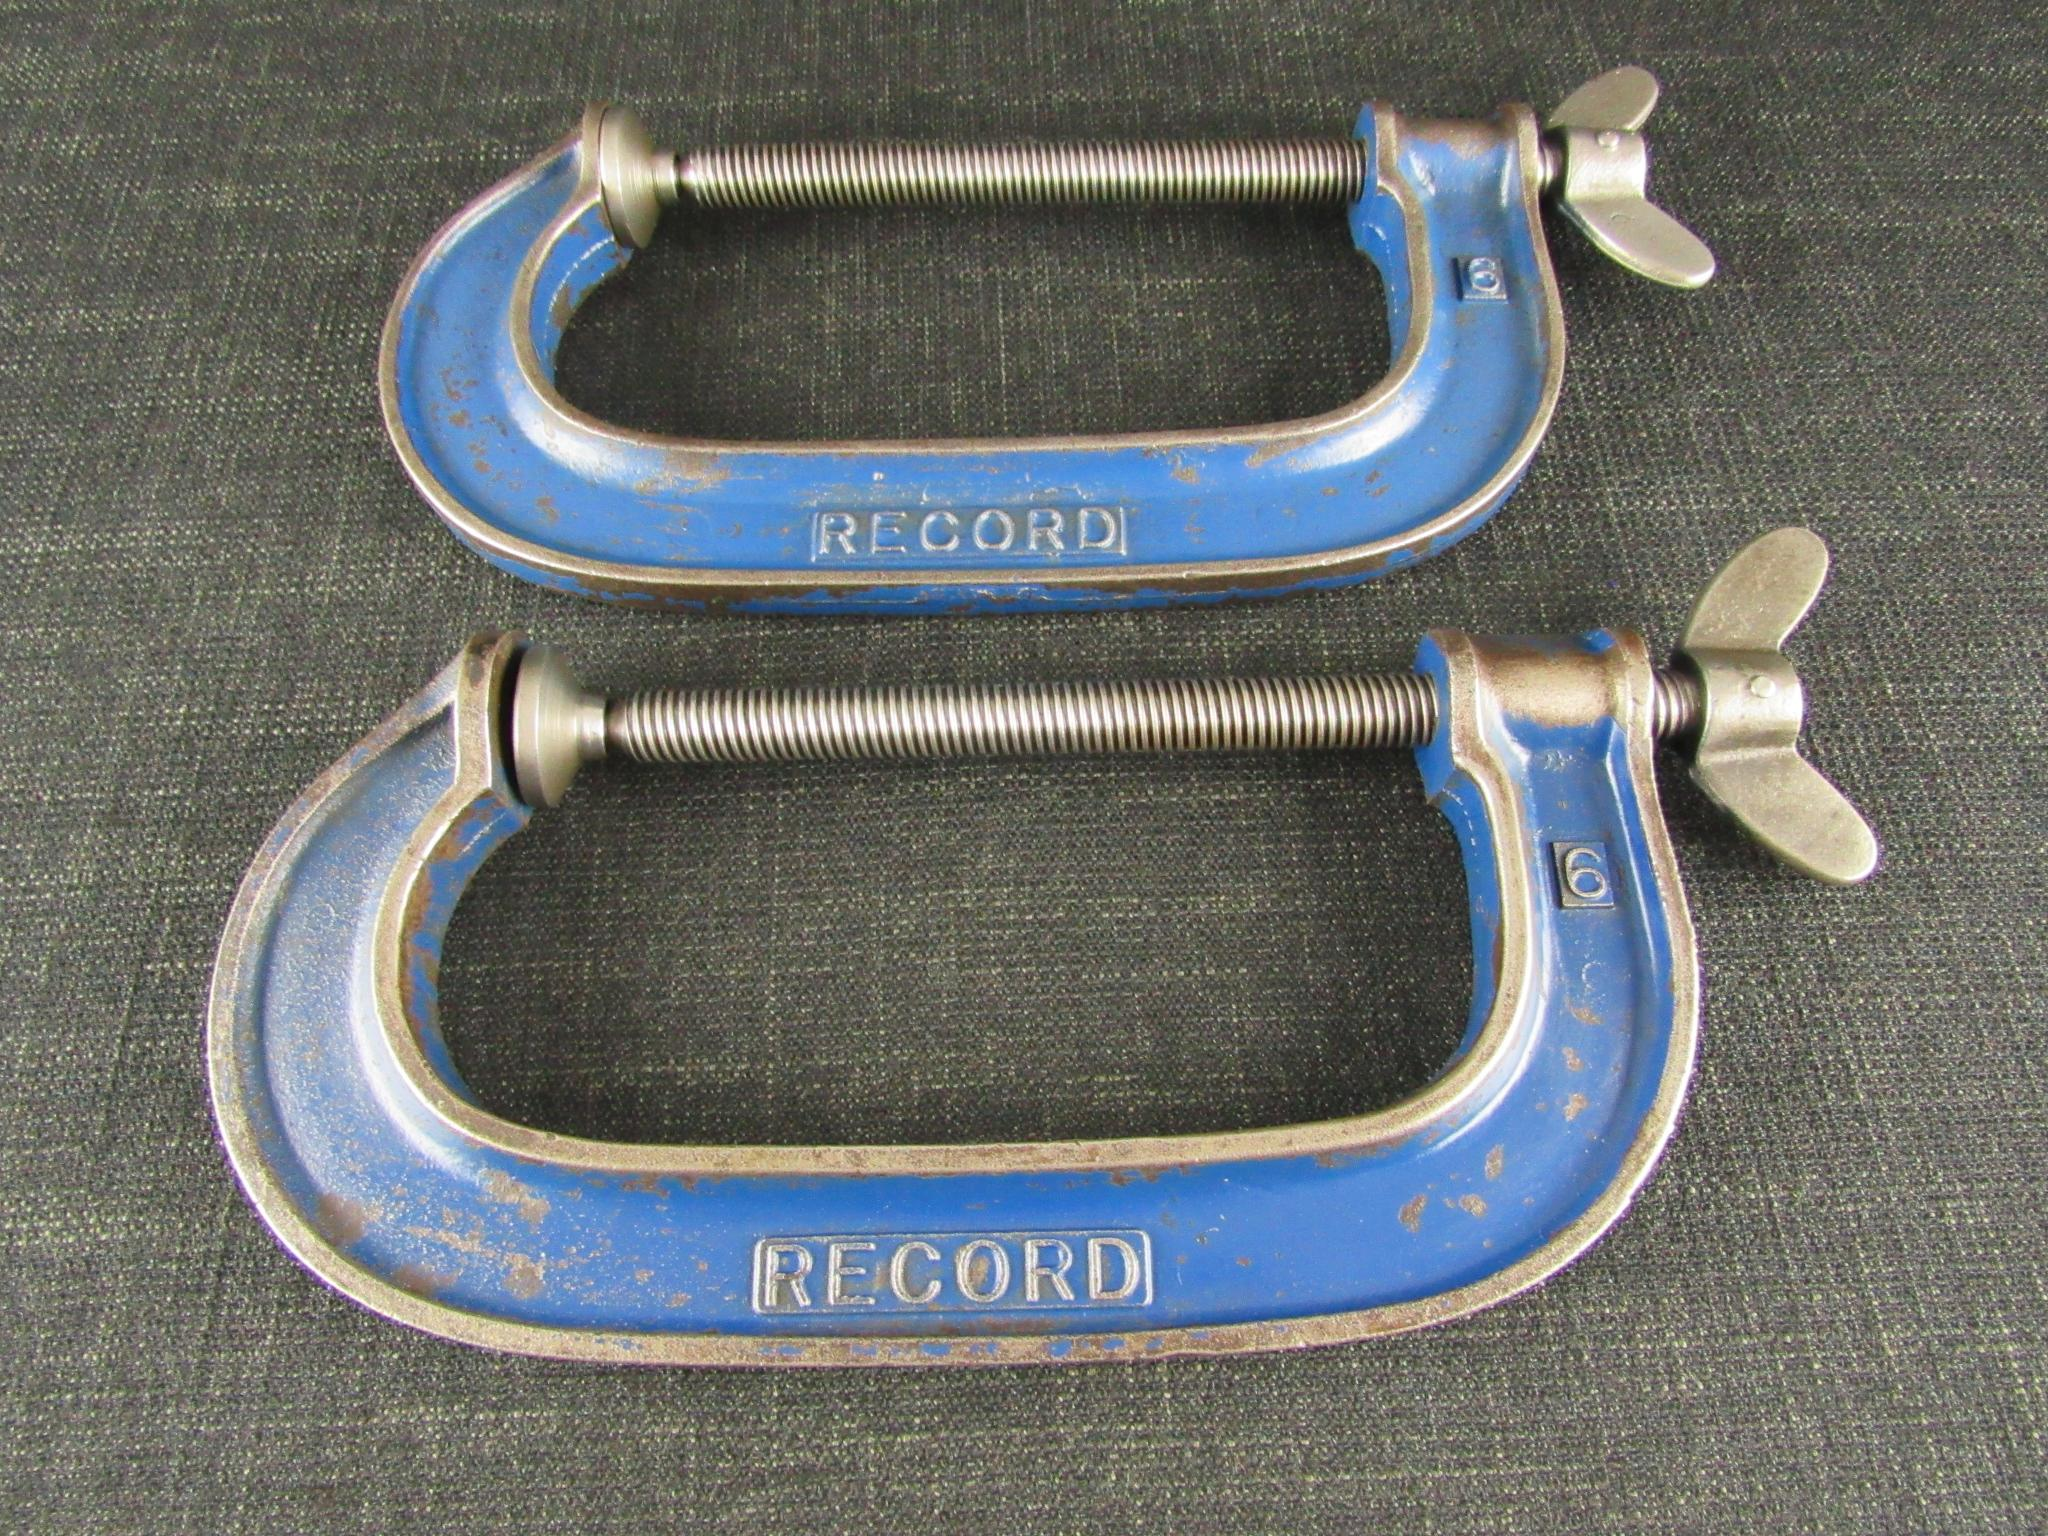 Pair of 6 inch RECORD G clamps